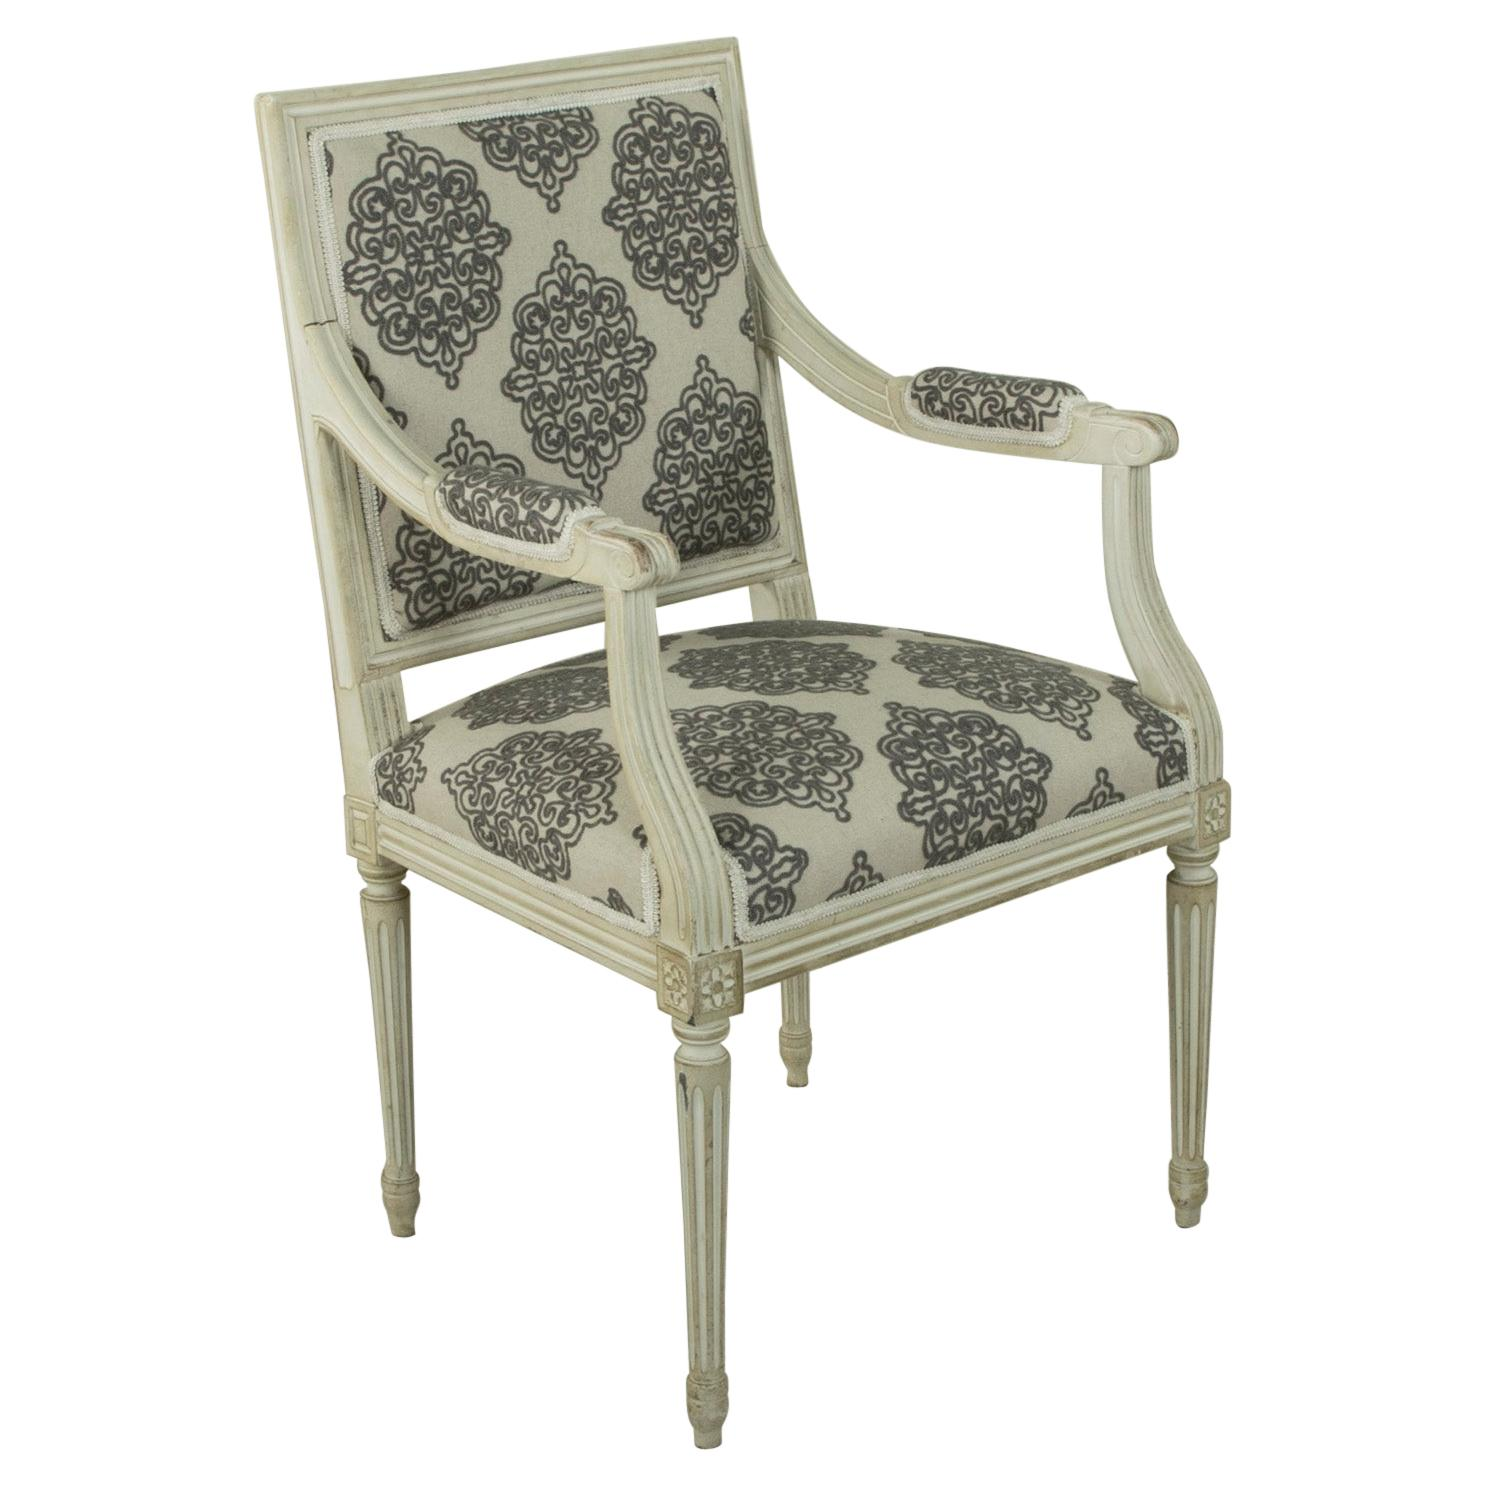 Mid-20th Century French Louis XVI Style Painted White Armchair